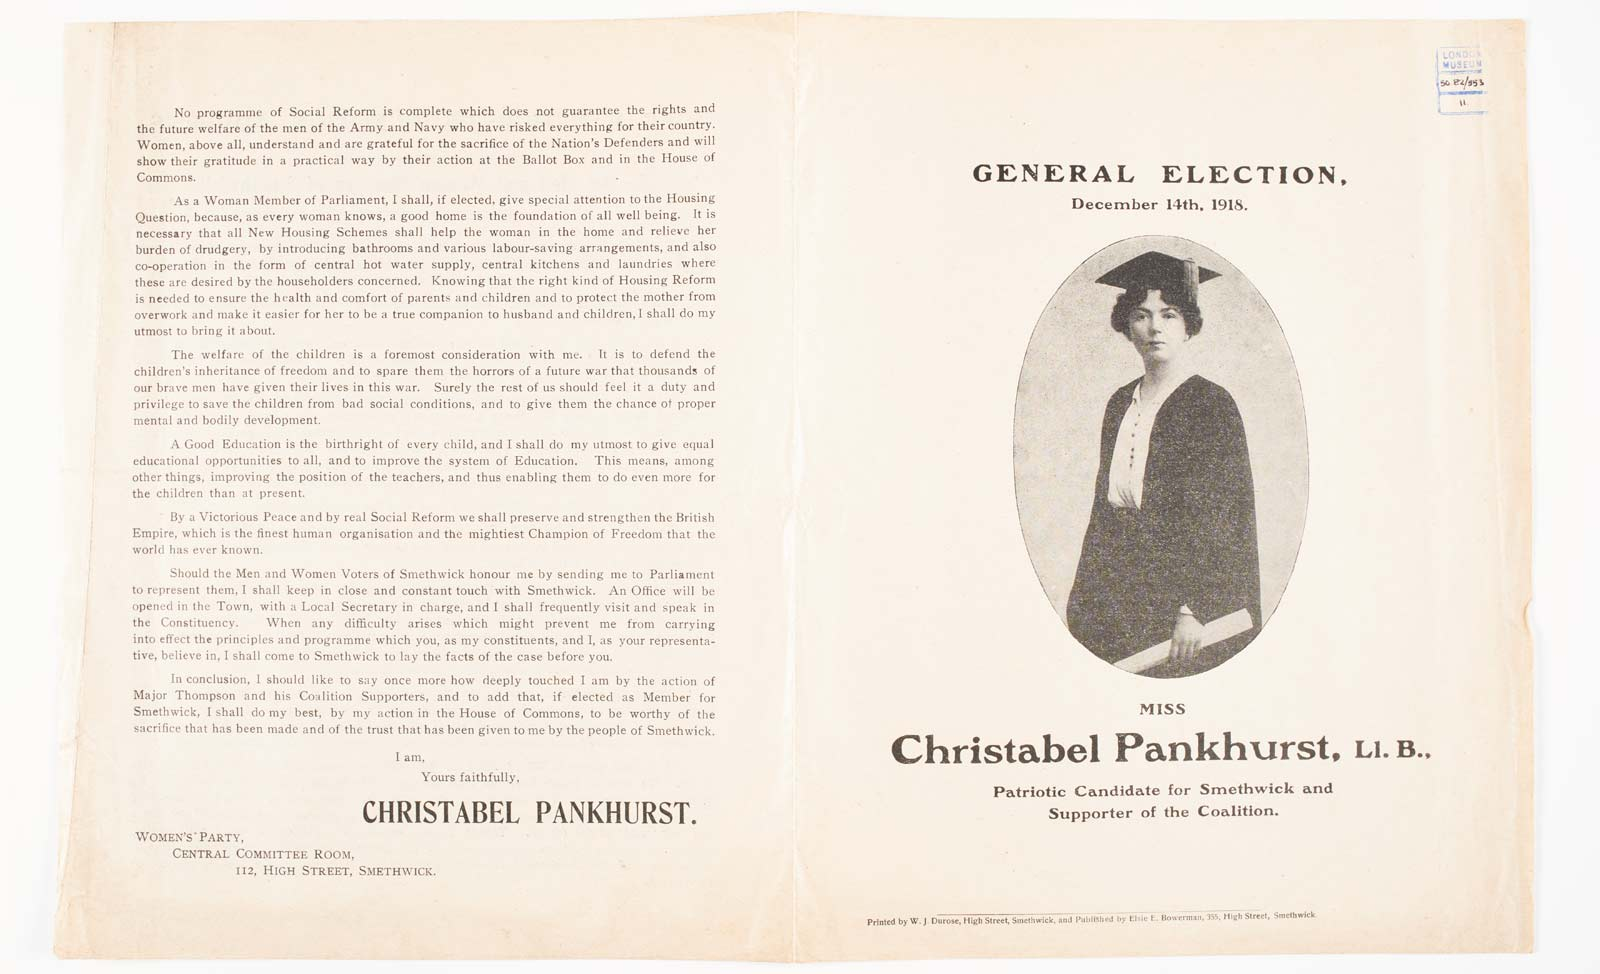 Campaign leaflet issued by The Women's Party and Christabel Pankhurst for the General Election. December 14th, 1918. The leaflet is printed with Christabel Pankhurst's Election Address to the Men and Women Electors of Smethwick.